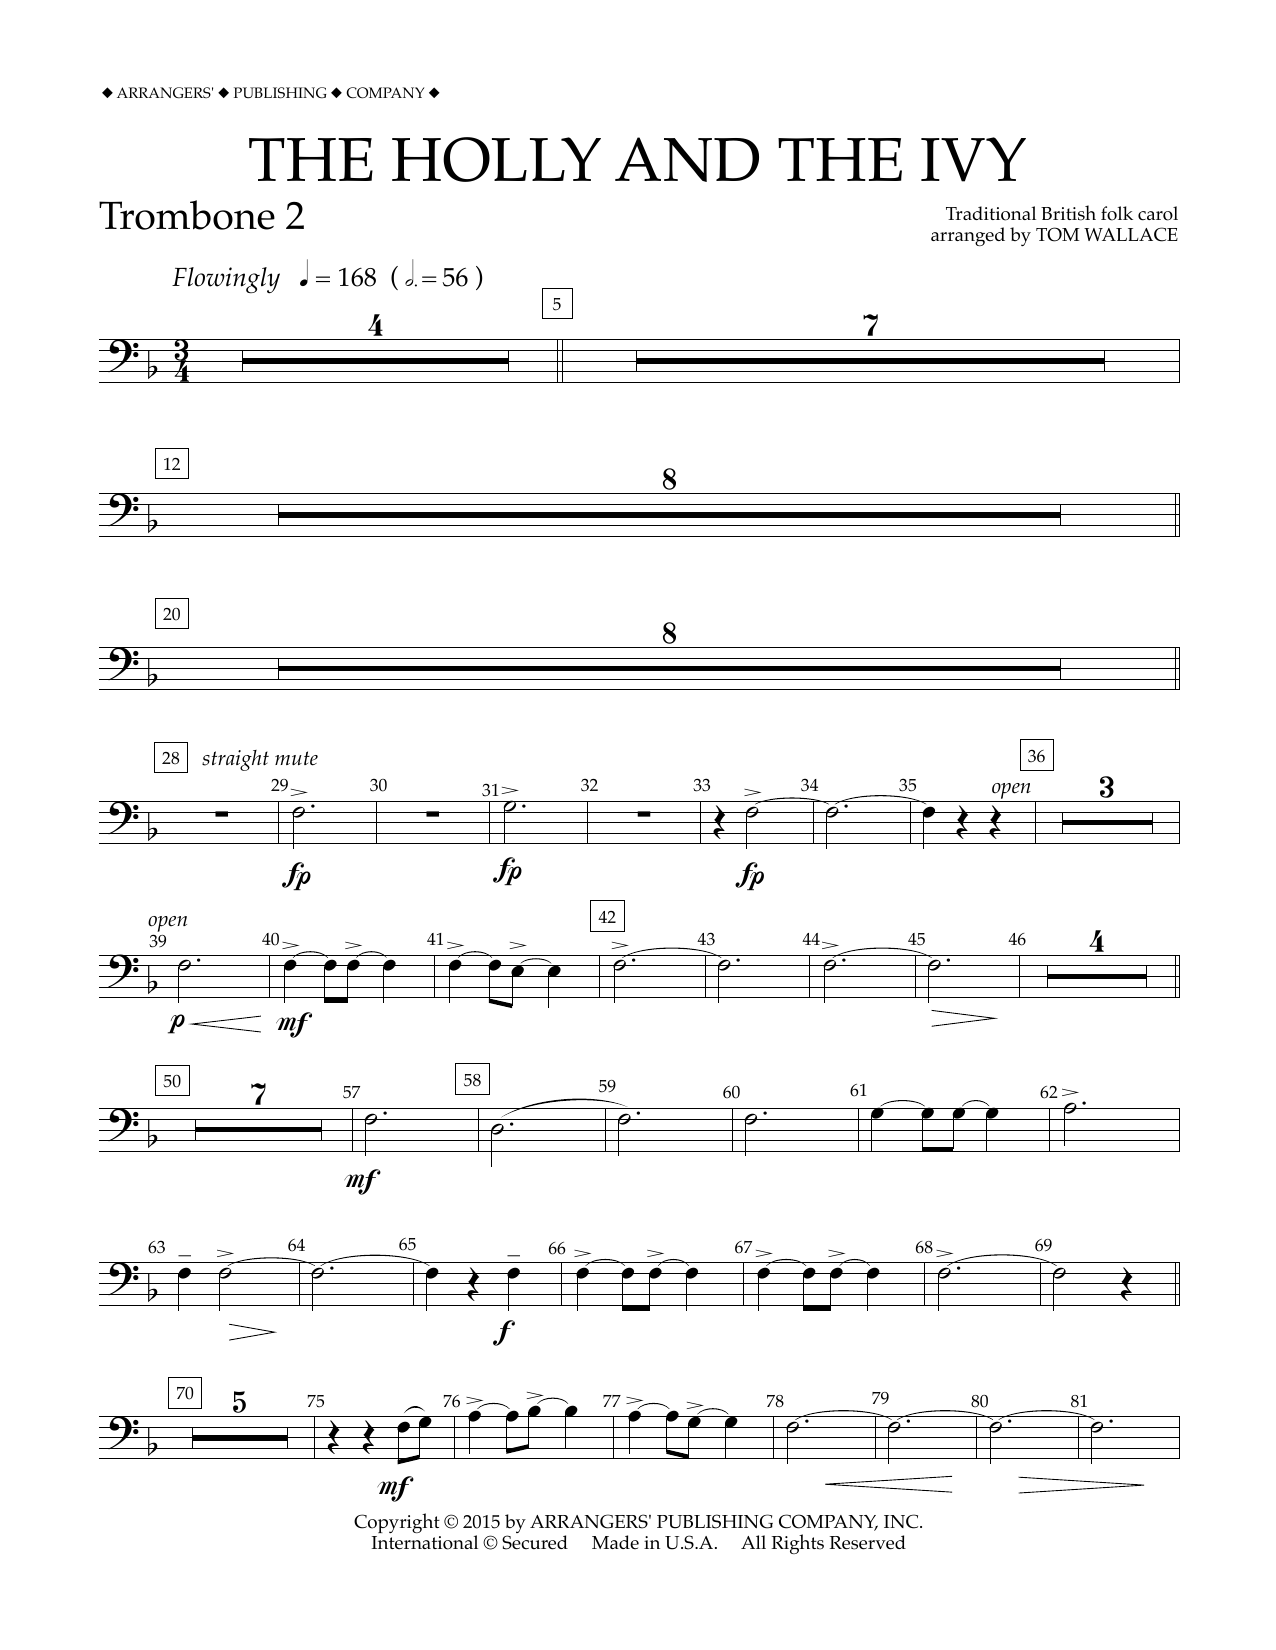 Tom Wallace The Holly and the Ivy - Trombone 2 sheet music notes and chords